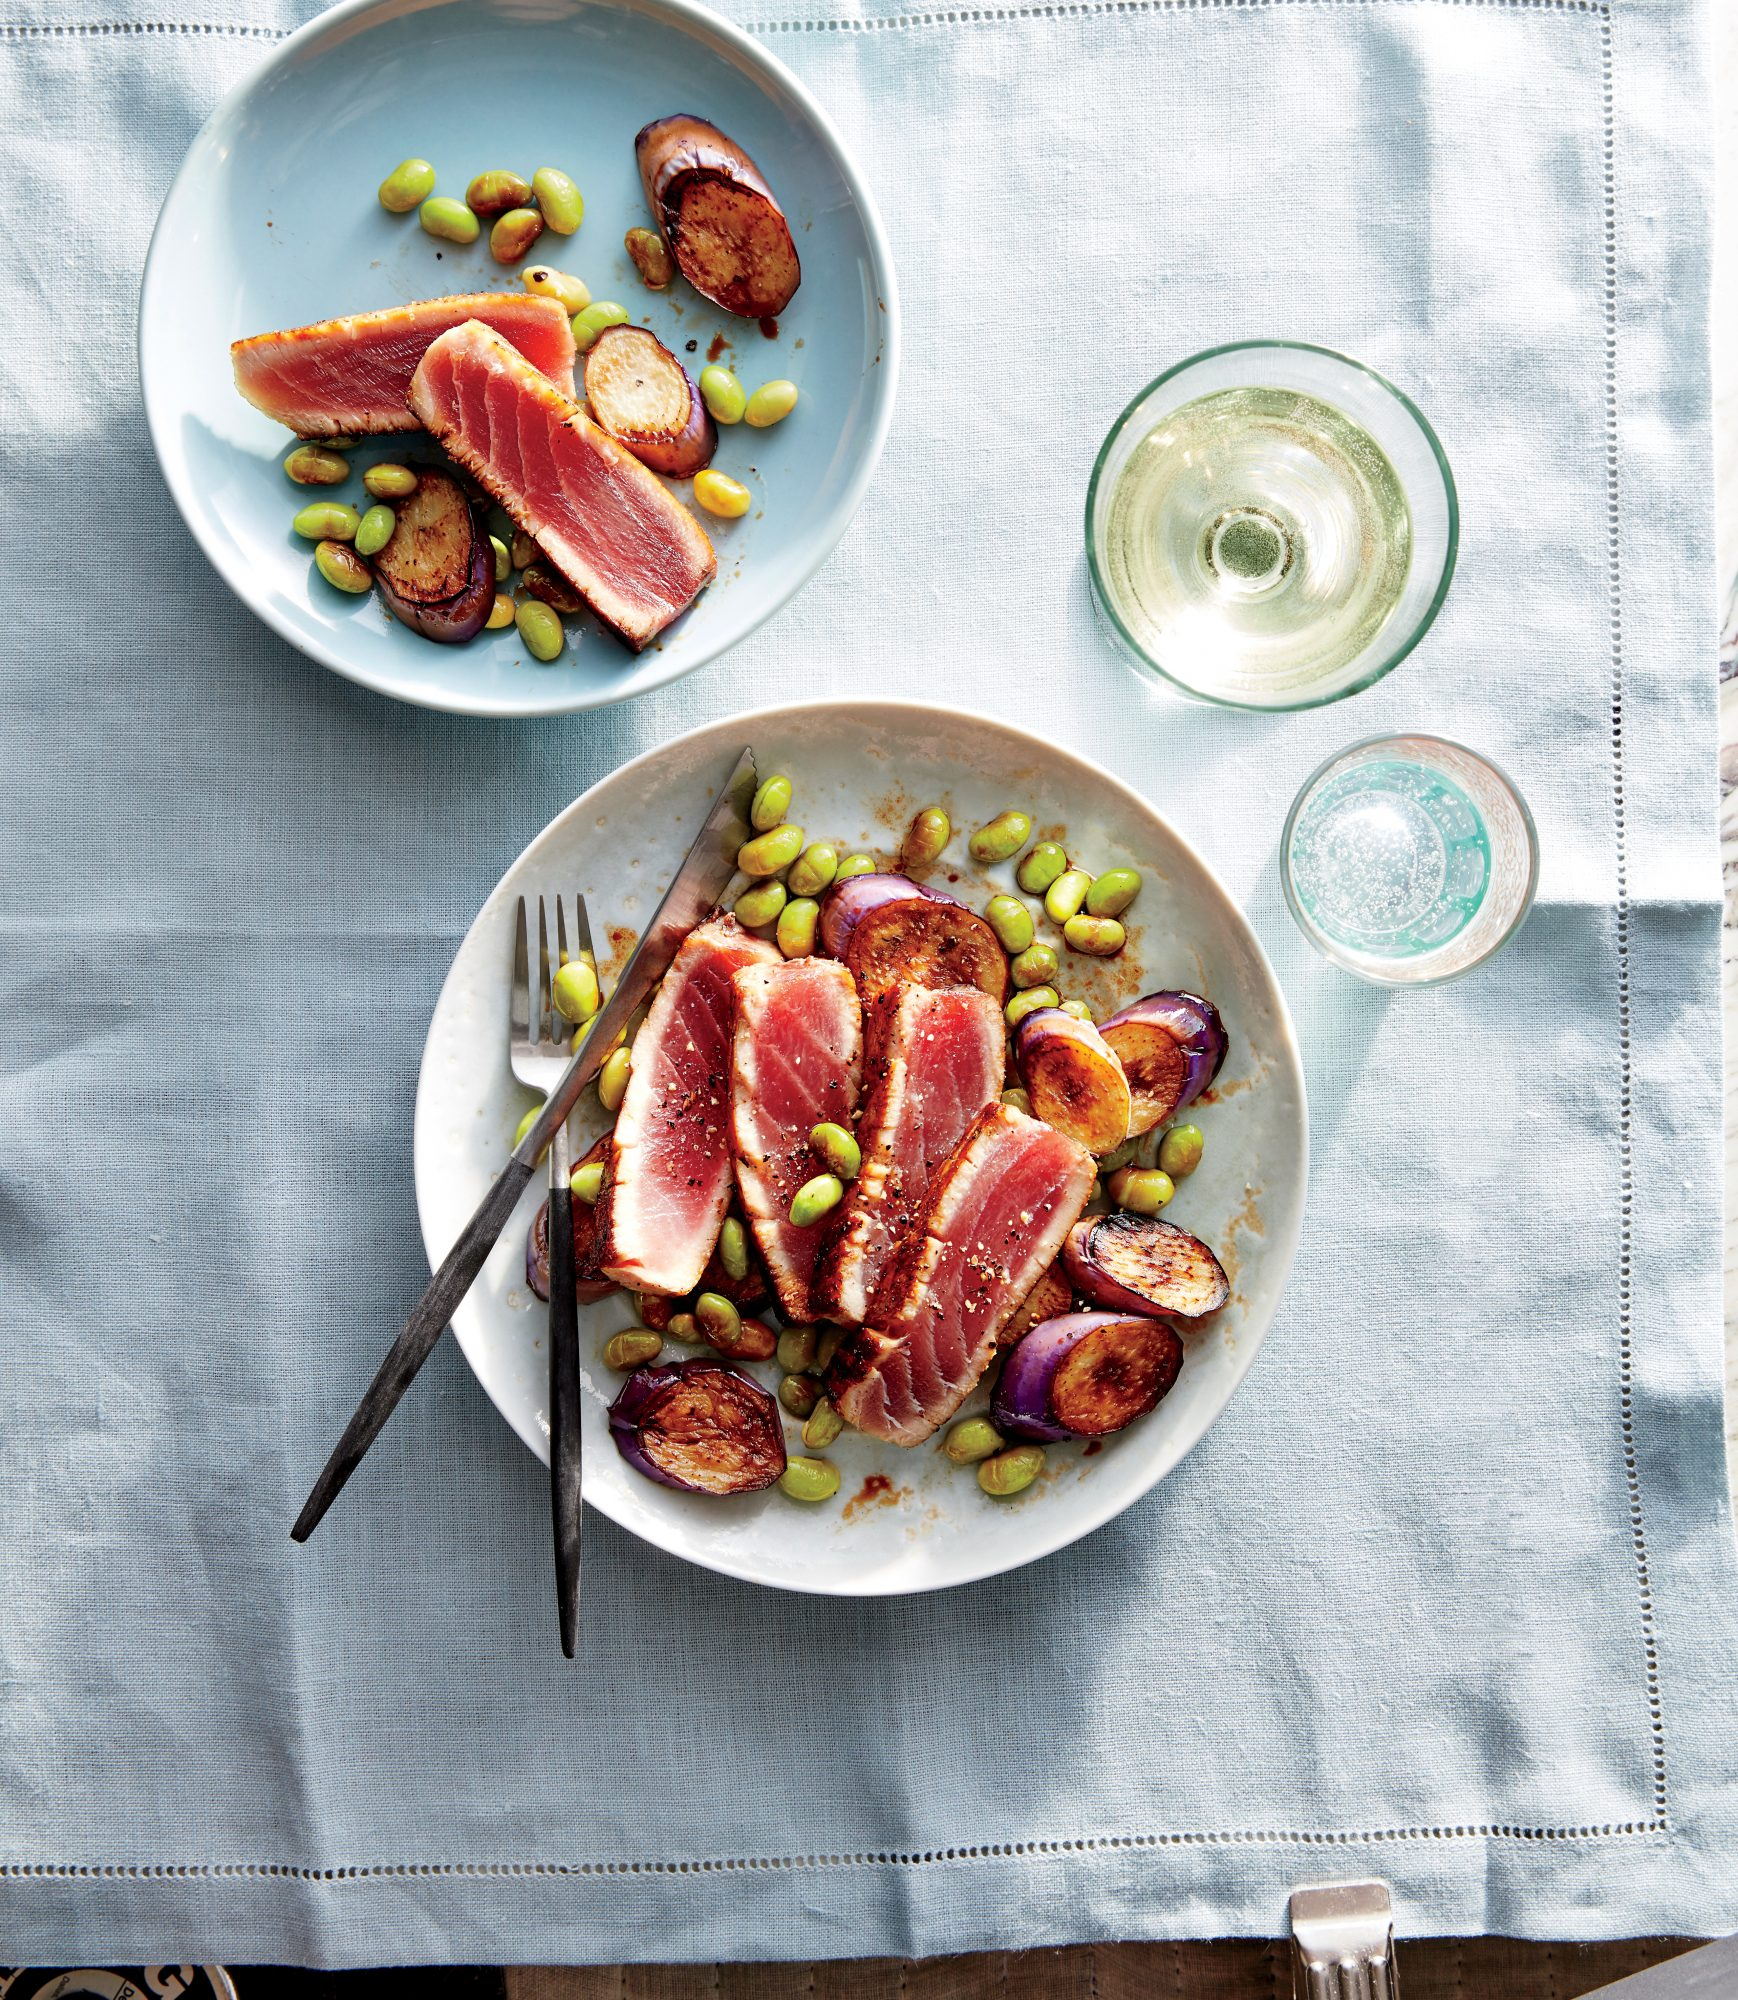 Seared Tuna with Eggplant and Edamame